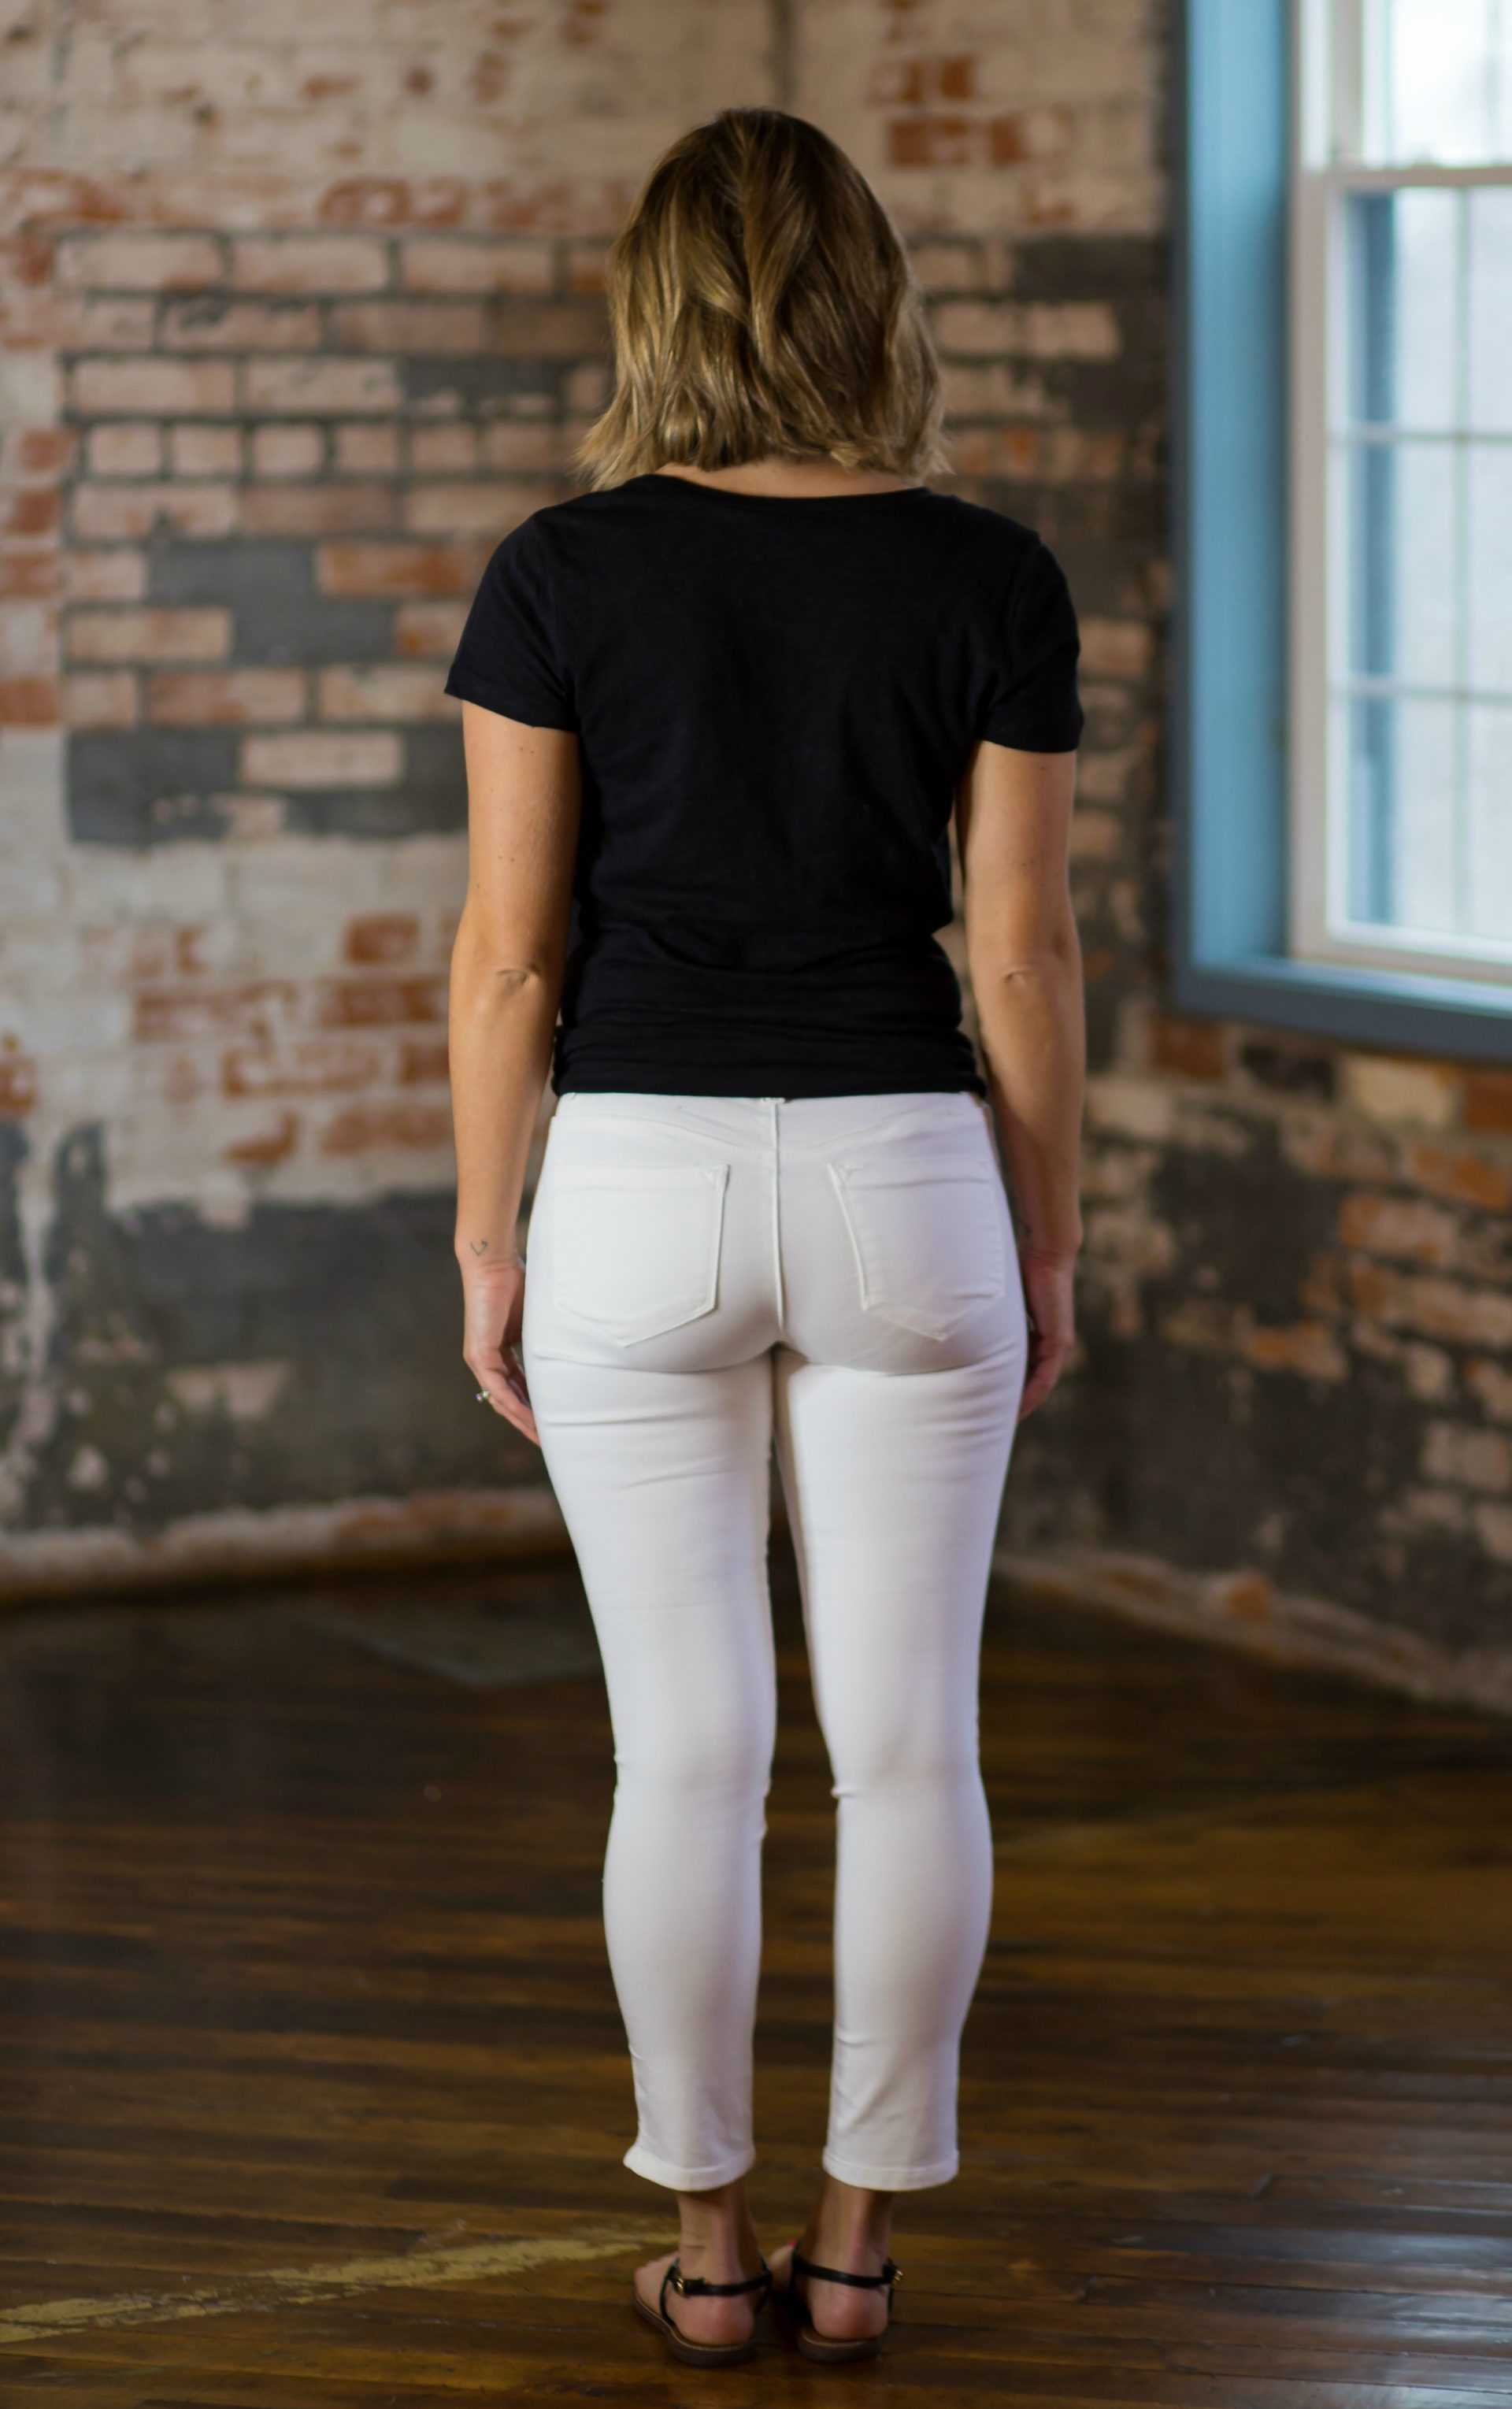 Not ass in tight white pants